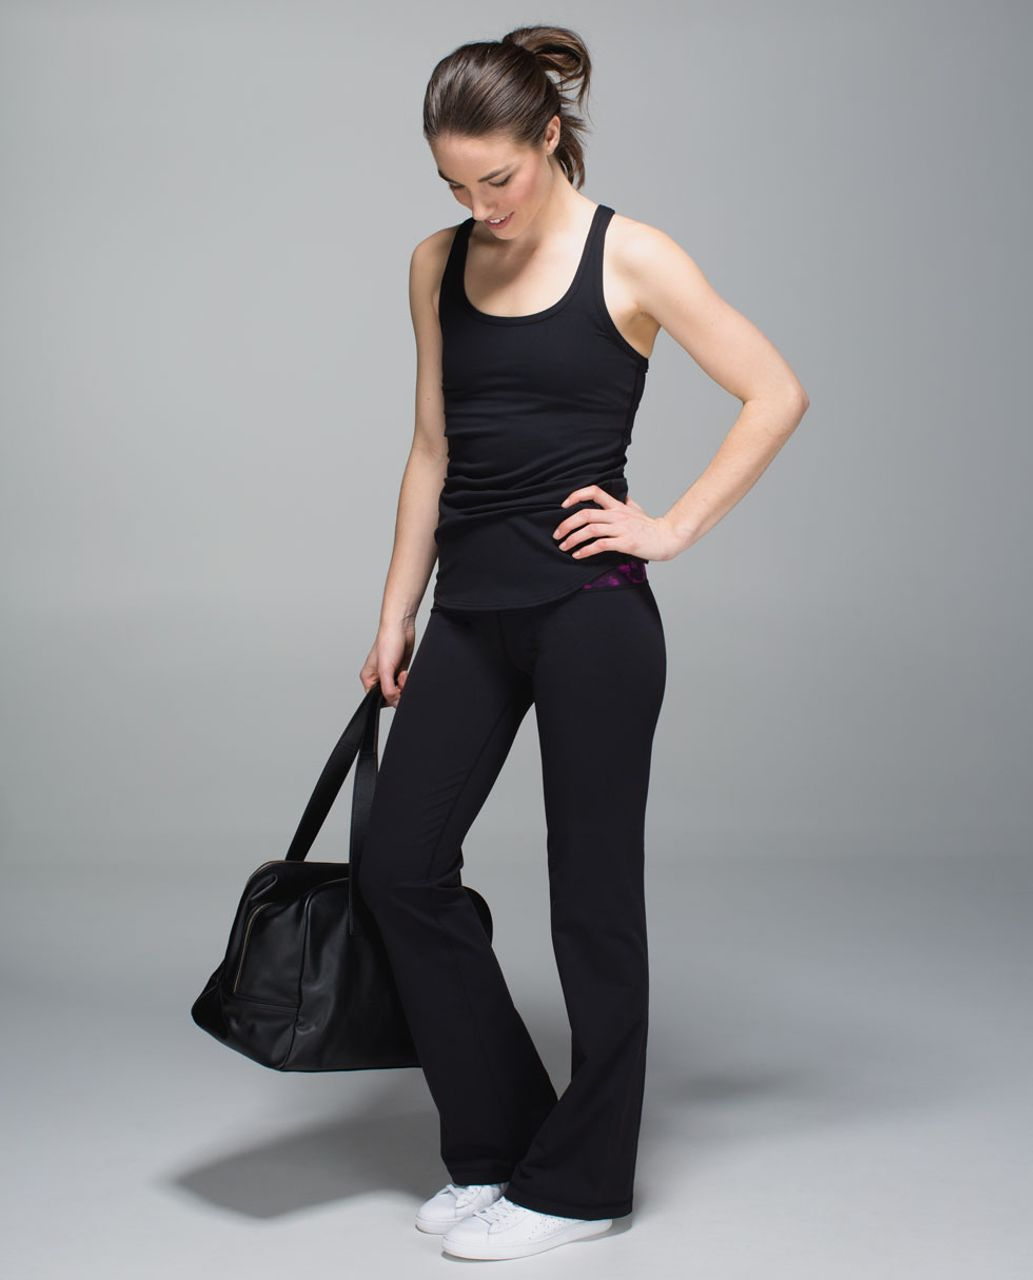 Lululemon Groove Pant II *Full-On Luon (Roll Down - Tall) - Black / Breezie Regal Plum Black